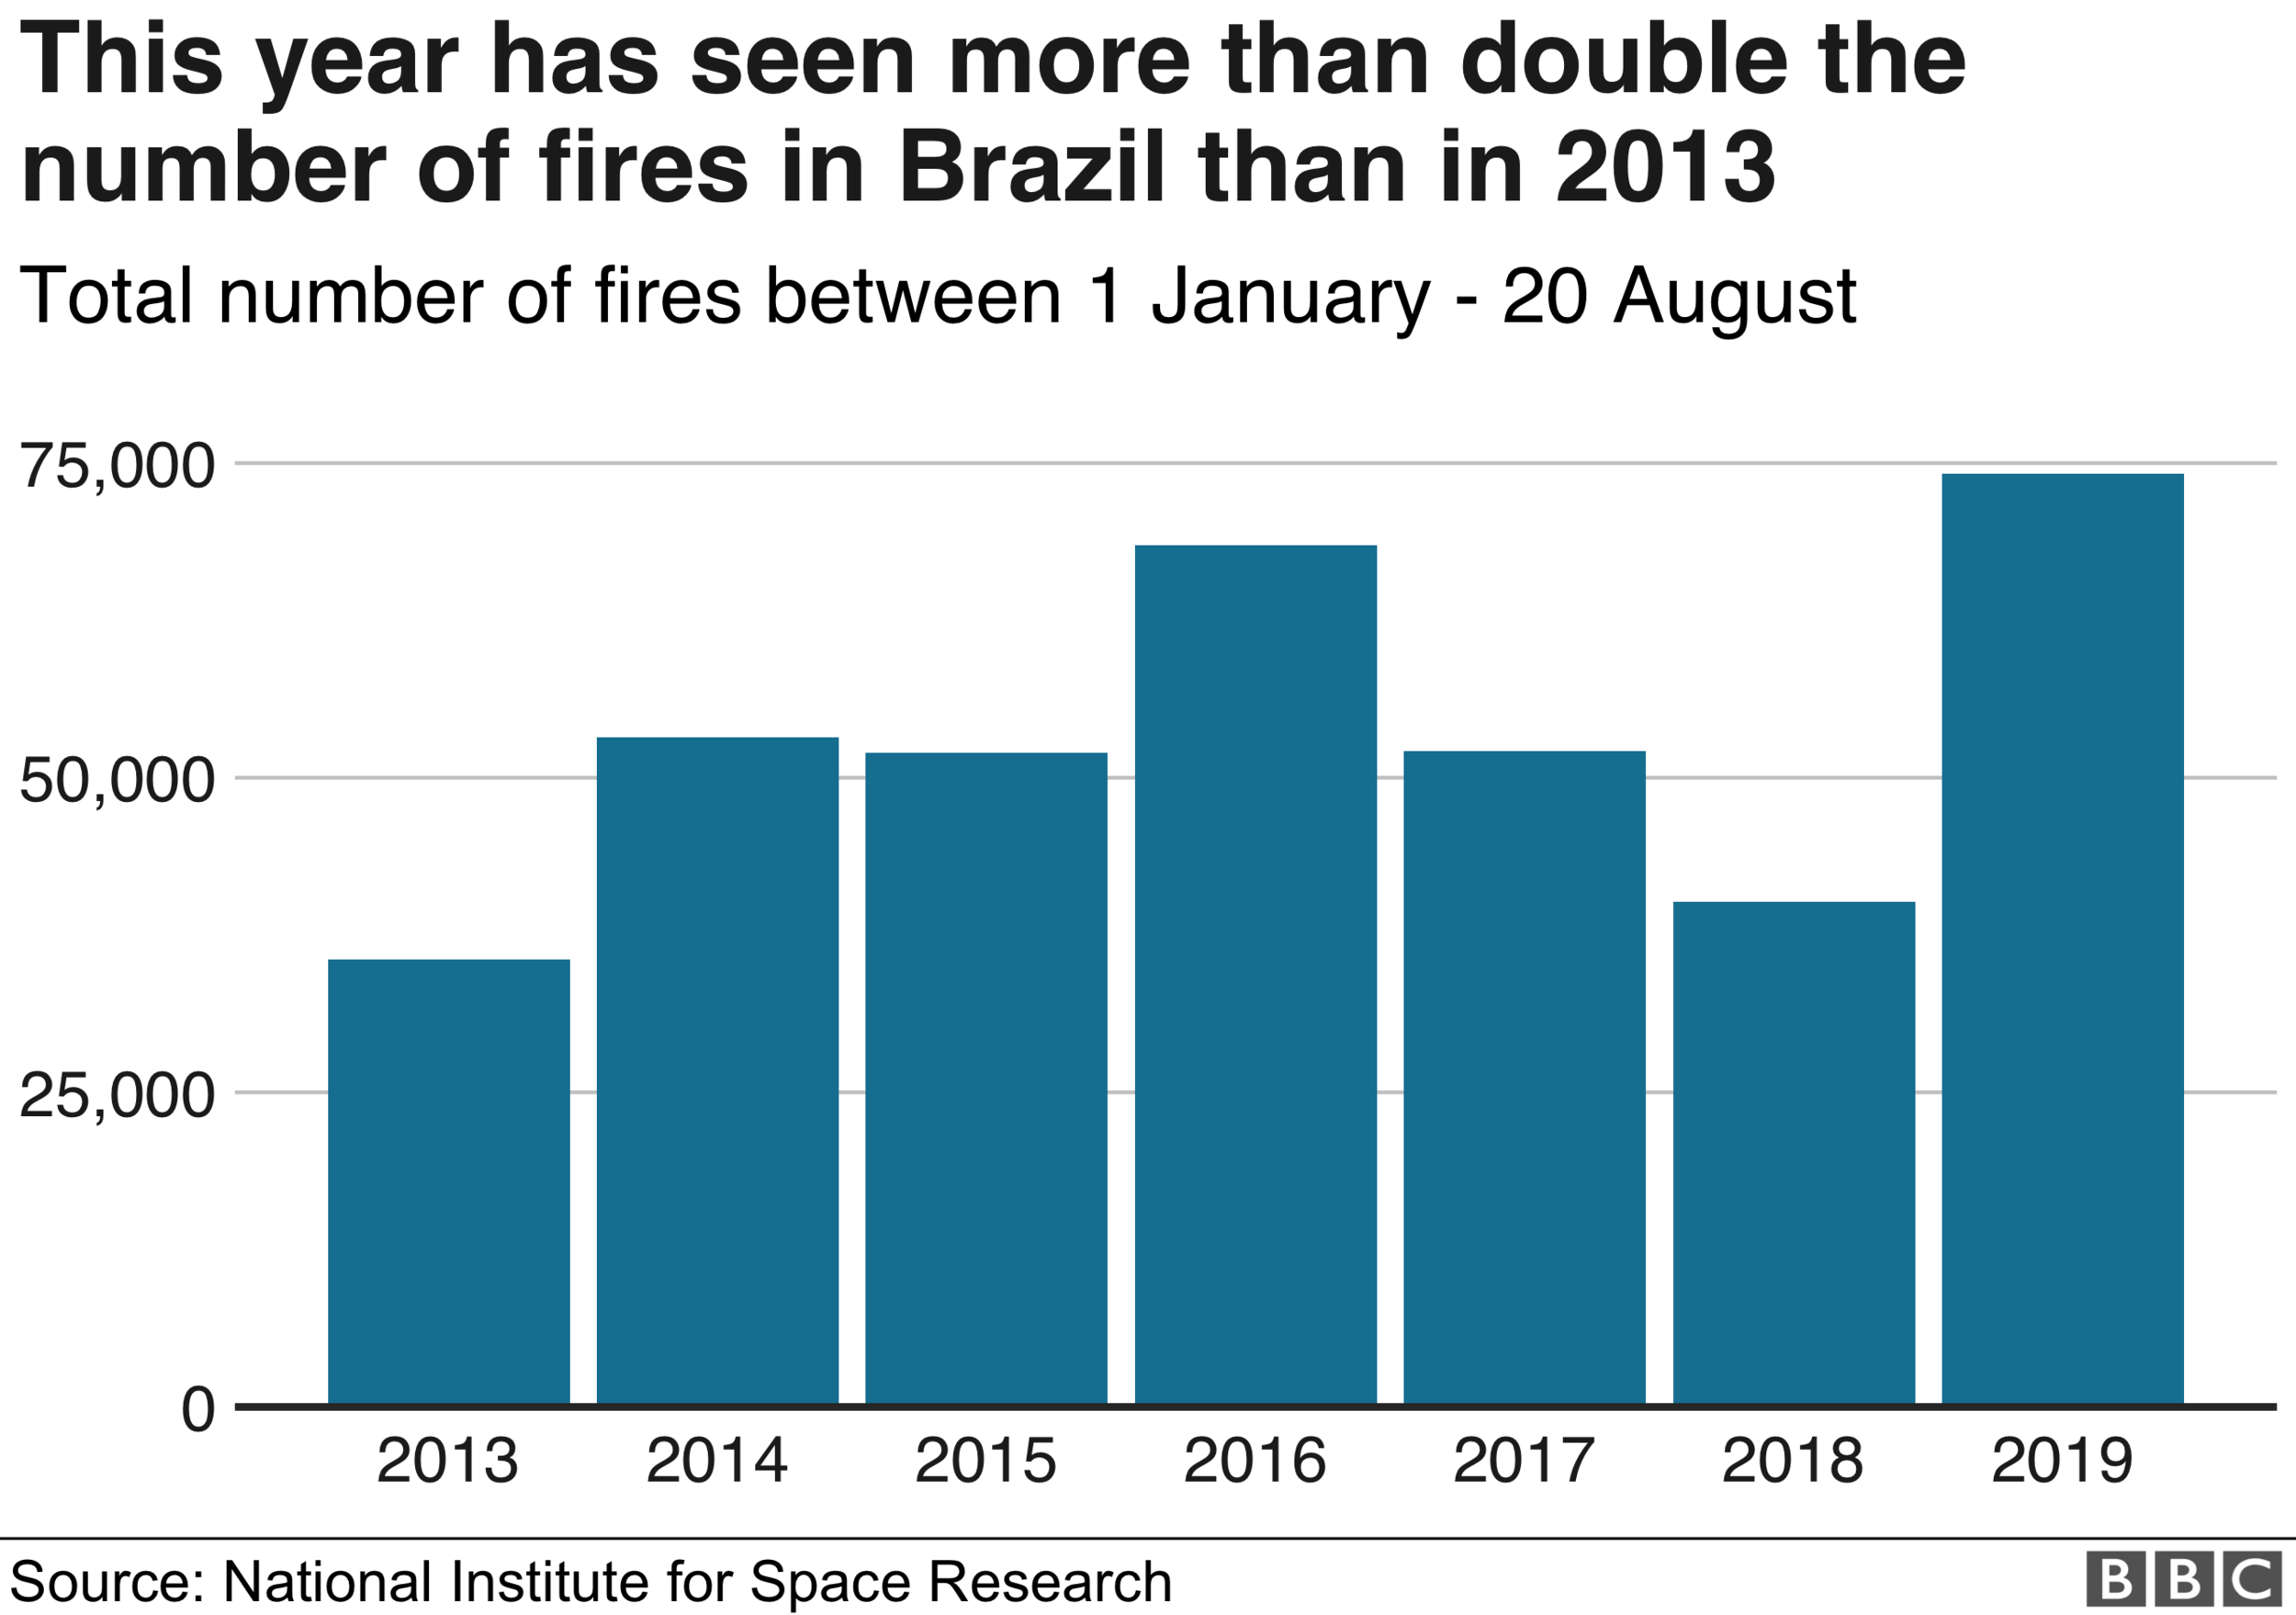 Total number of fires per year in the Amazon Rainforest between 2013 and 2019.